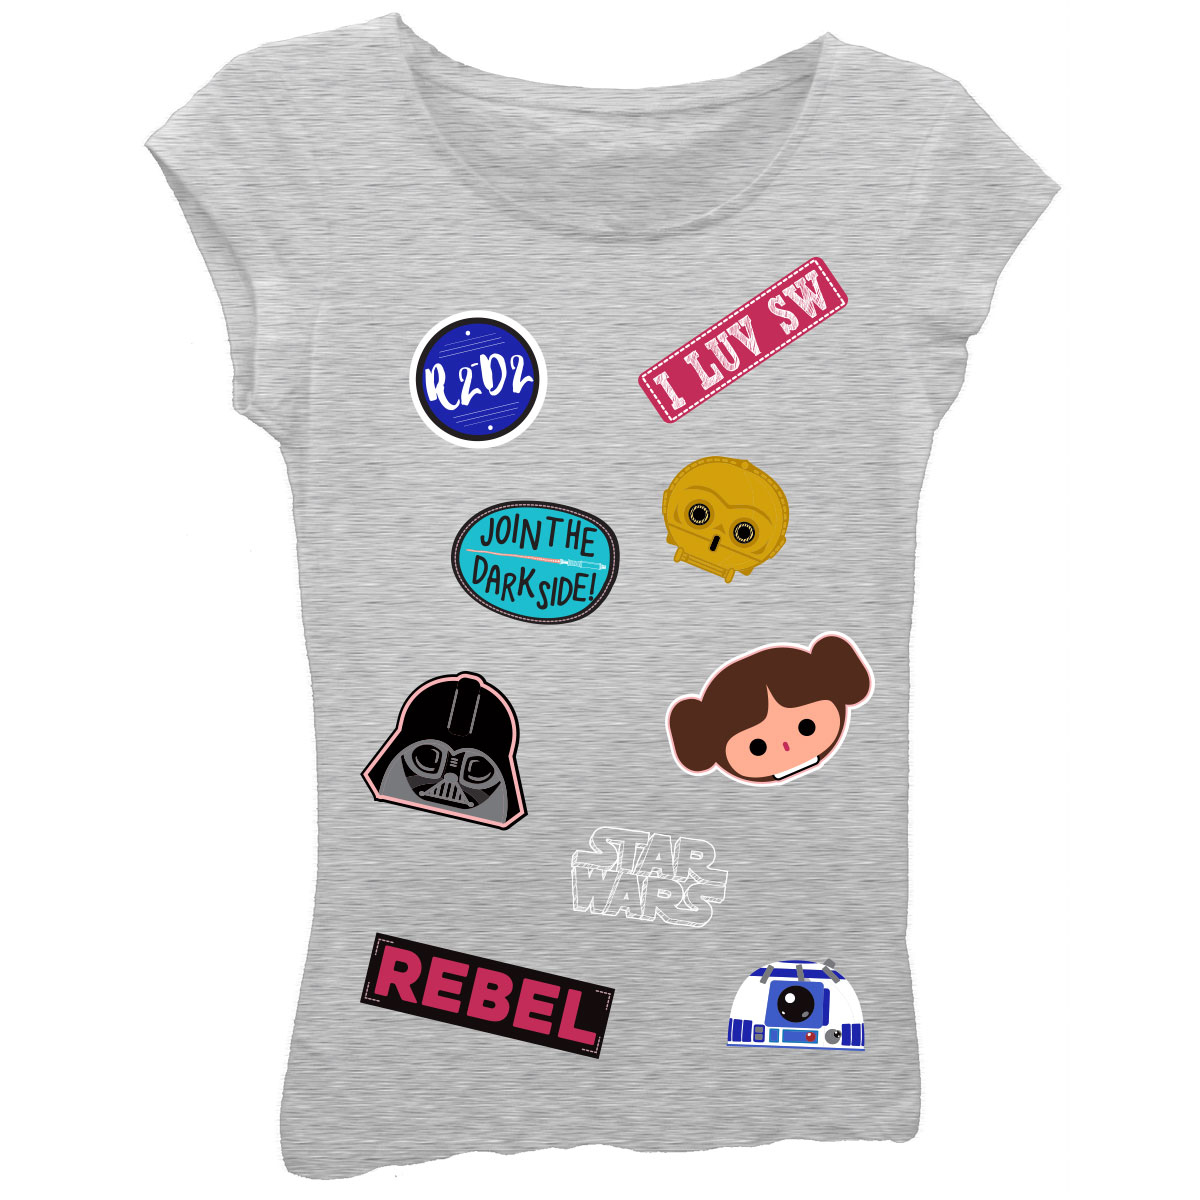 Girls' Short Sleeve Graphic T-shirt With Puff Ink